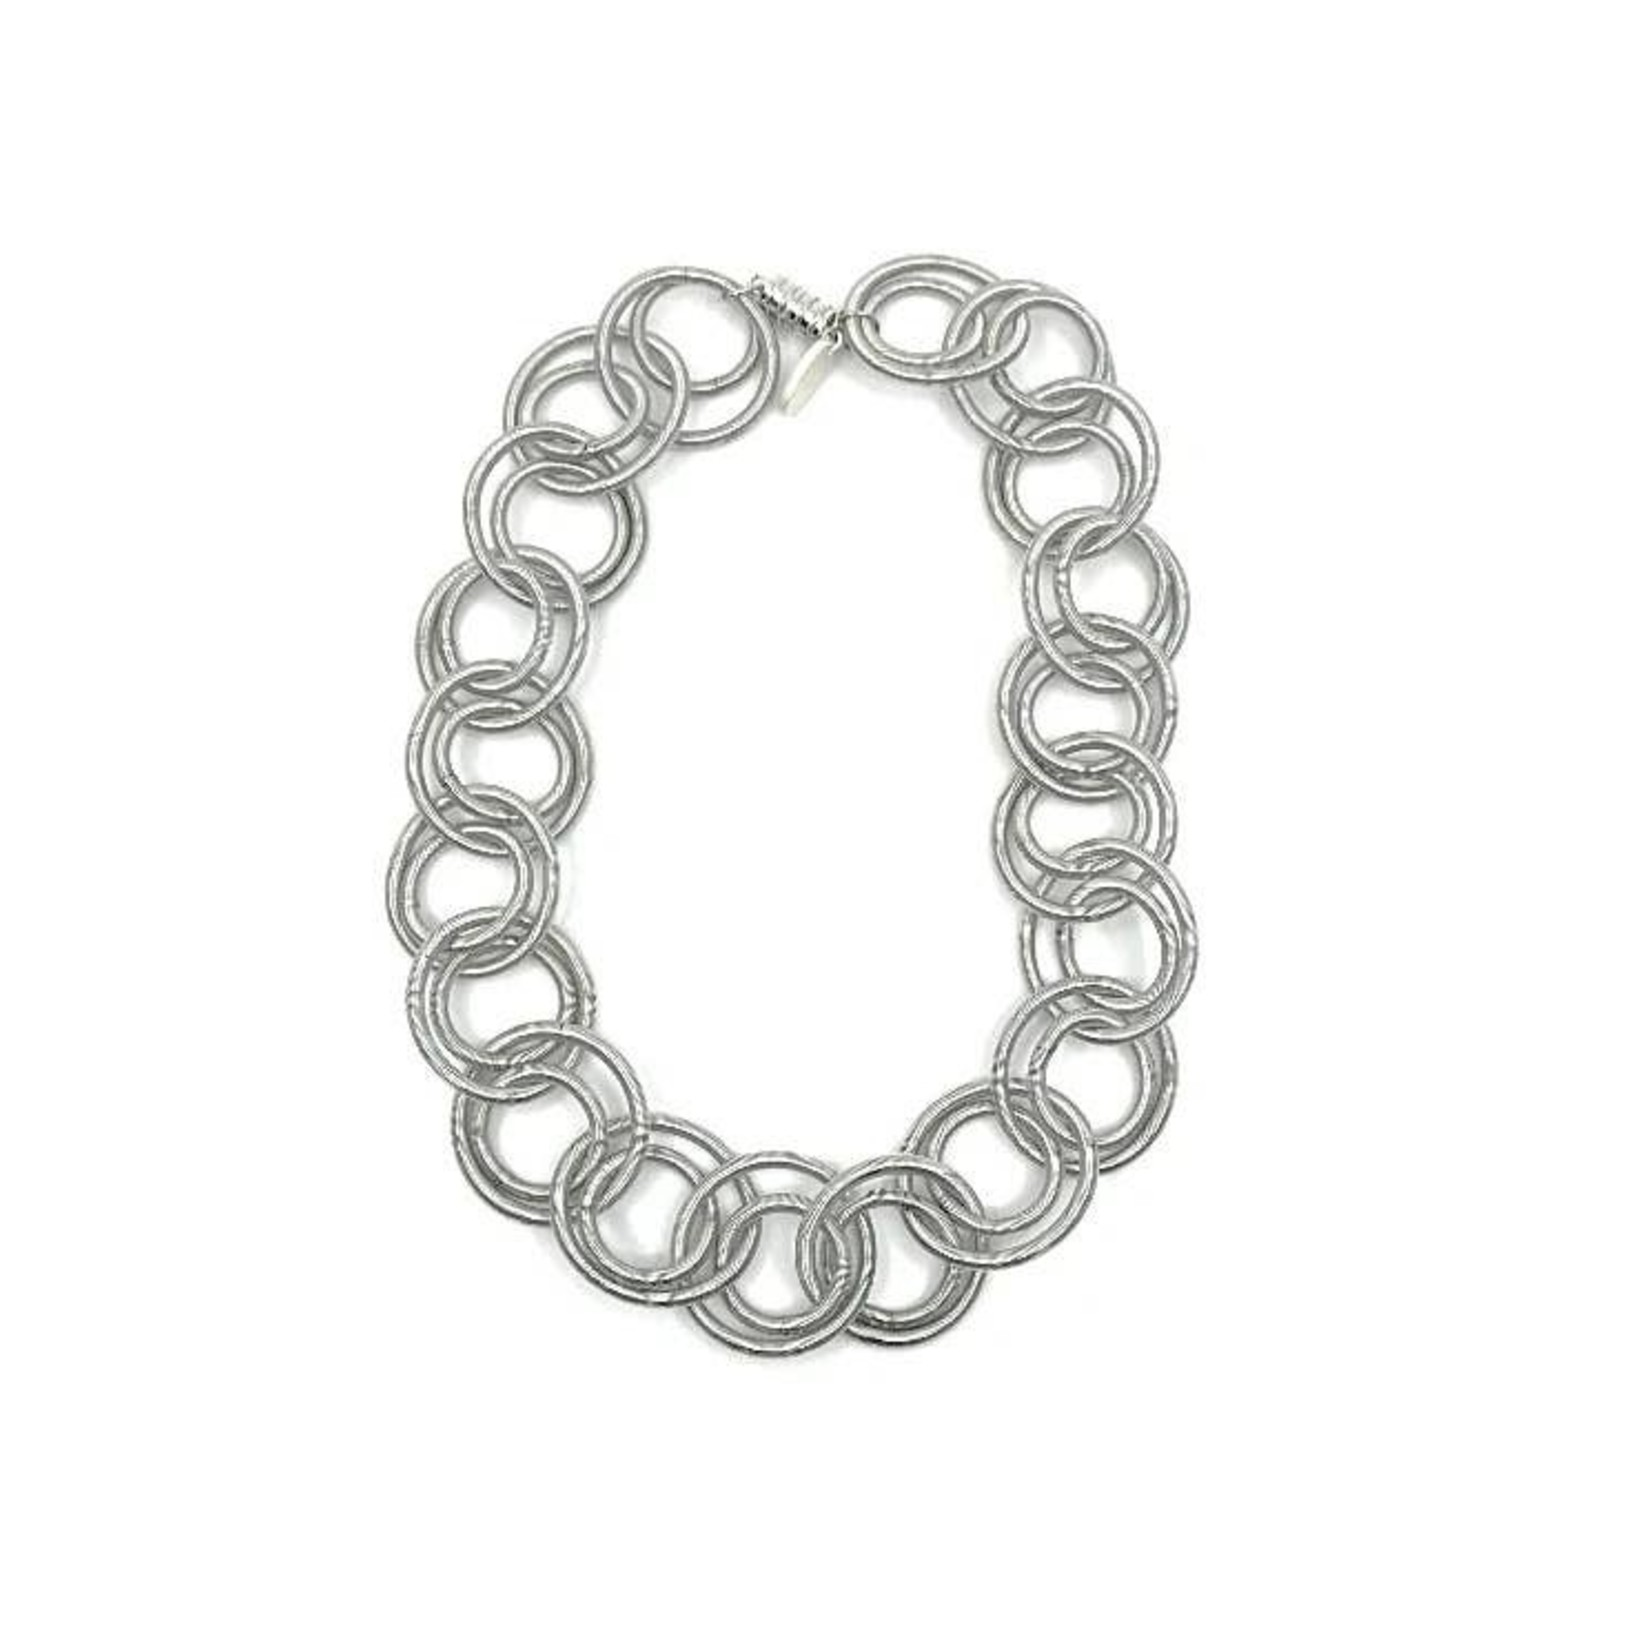 Sea Lily Silver PW Large Loop Short Necklace w/Magnet Closure